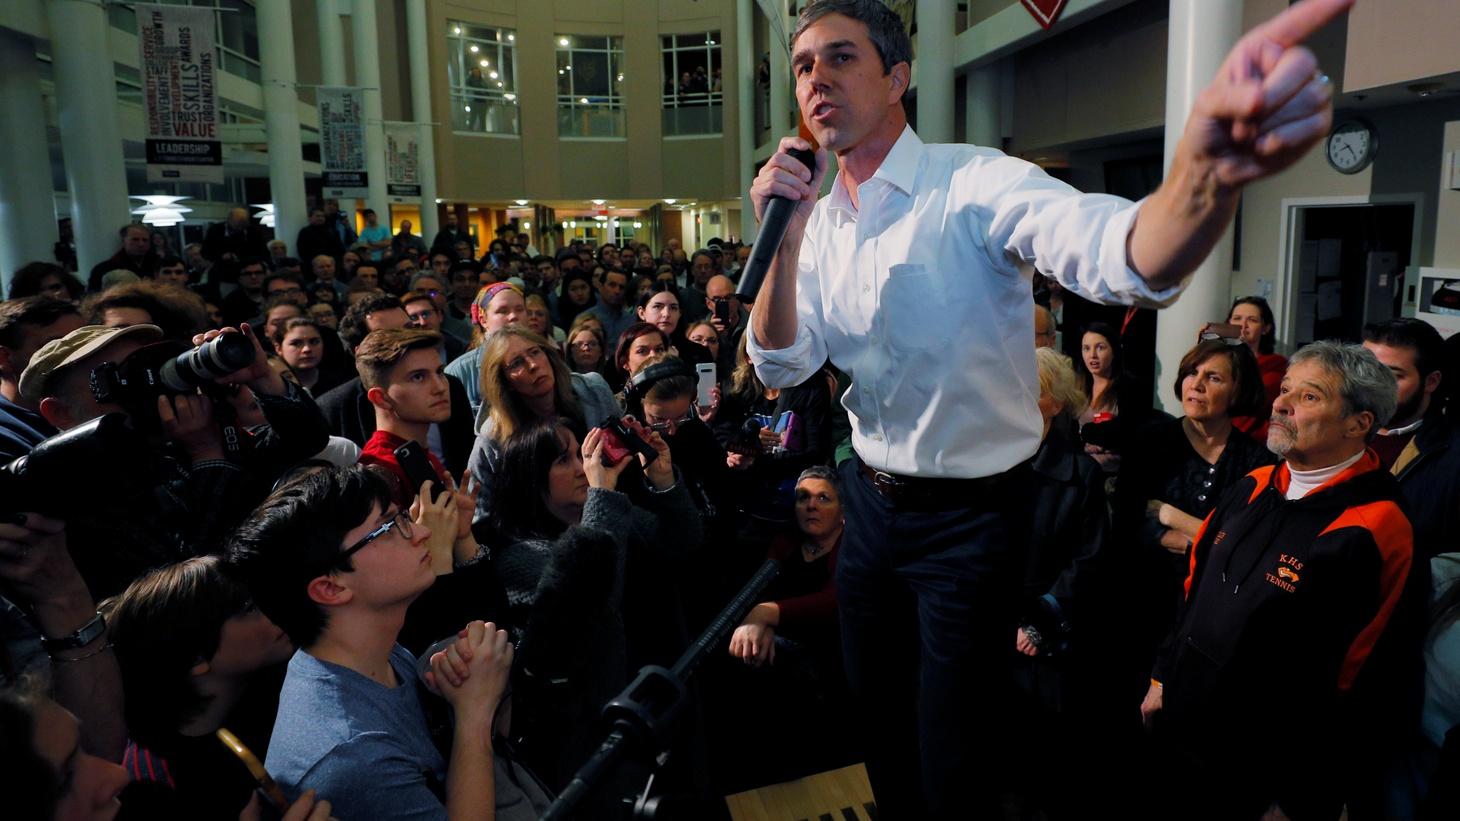 Democratic 2020 U.S. presidential candidate and former U.S. Representative Beto O'Rourke speaks at a campaign stop at Keene State College in Keene, New Hampshire, U.S., March 19, 2019.